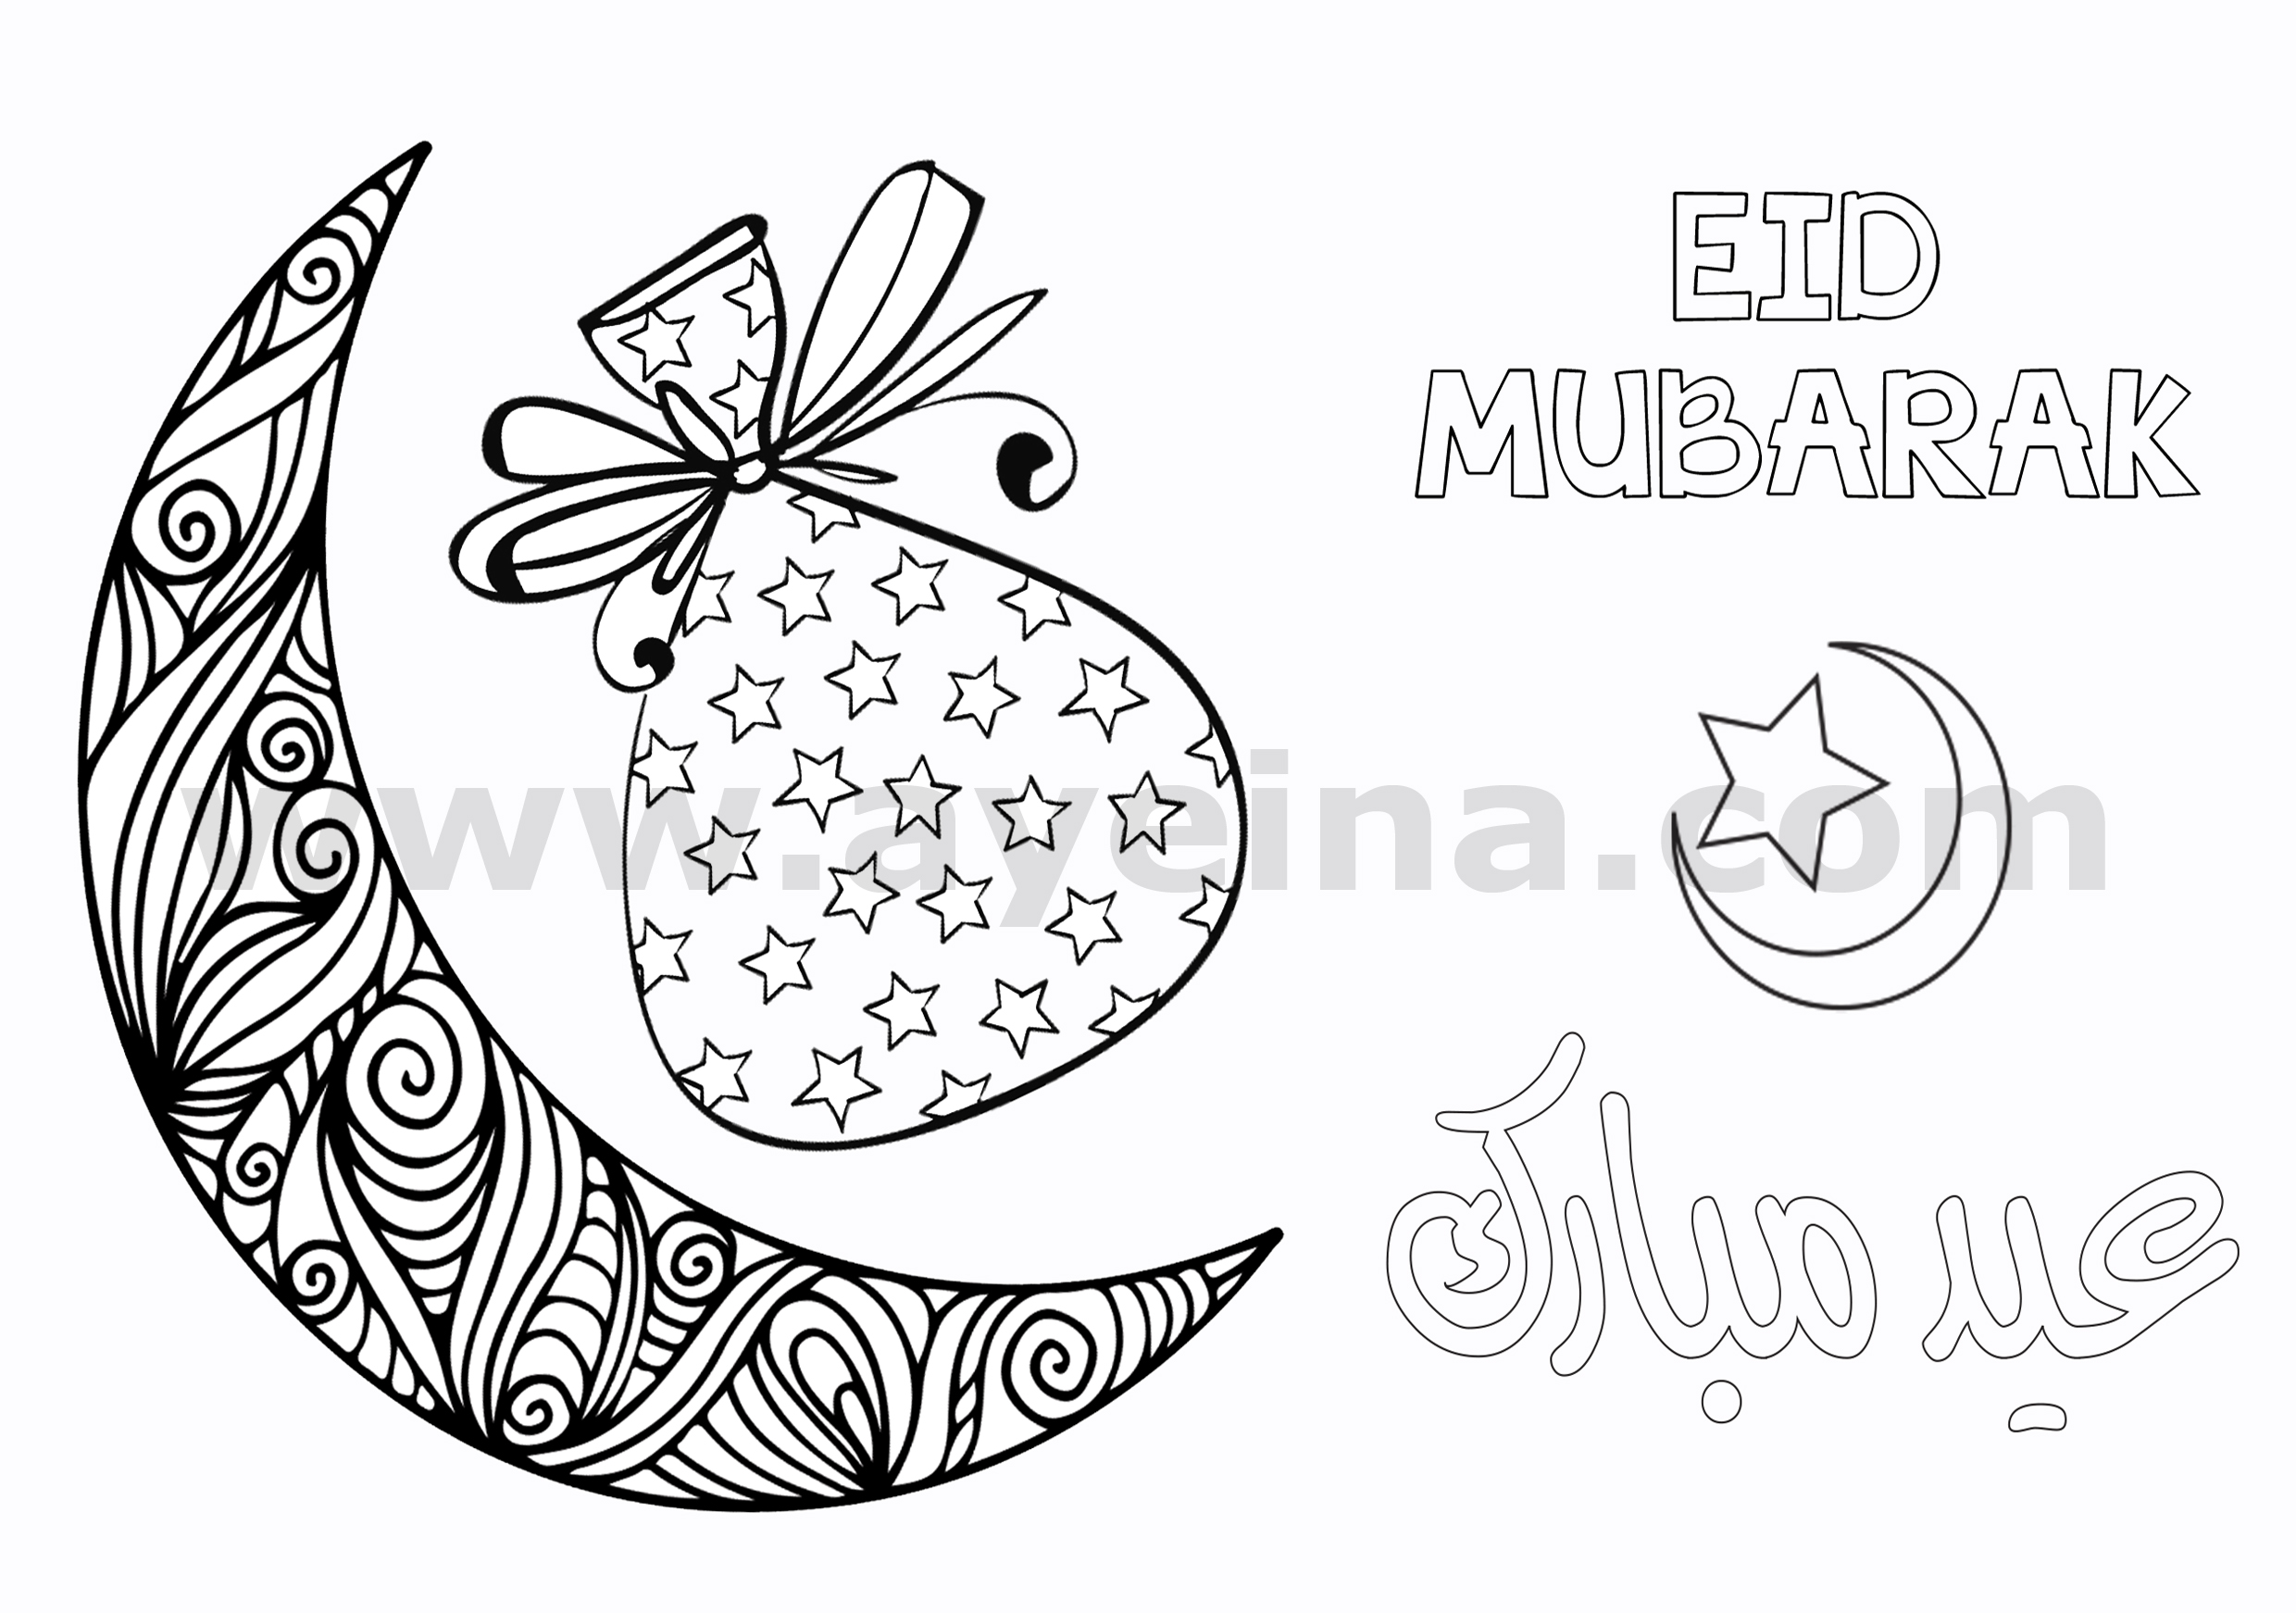 photo regarding Printable Coloring Cards titled Eid Mubarak Free of charge Coloring Card for Young children AYEINA